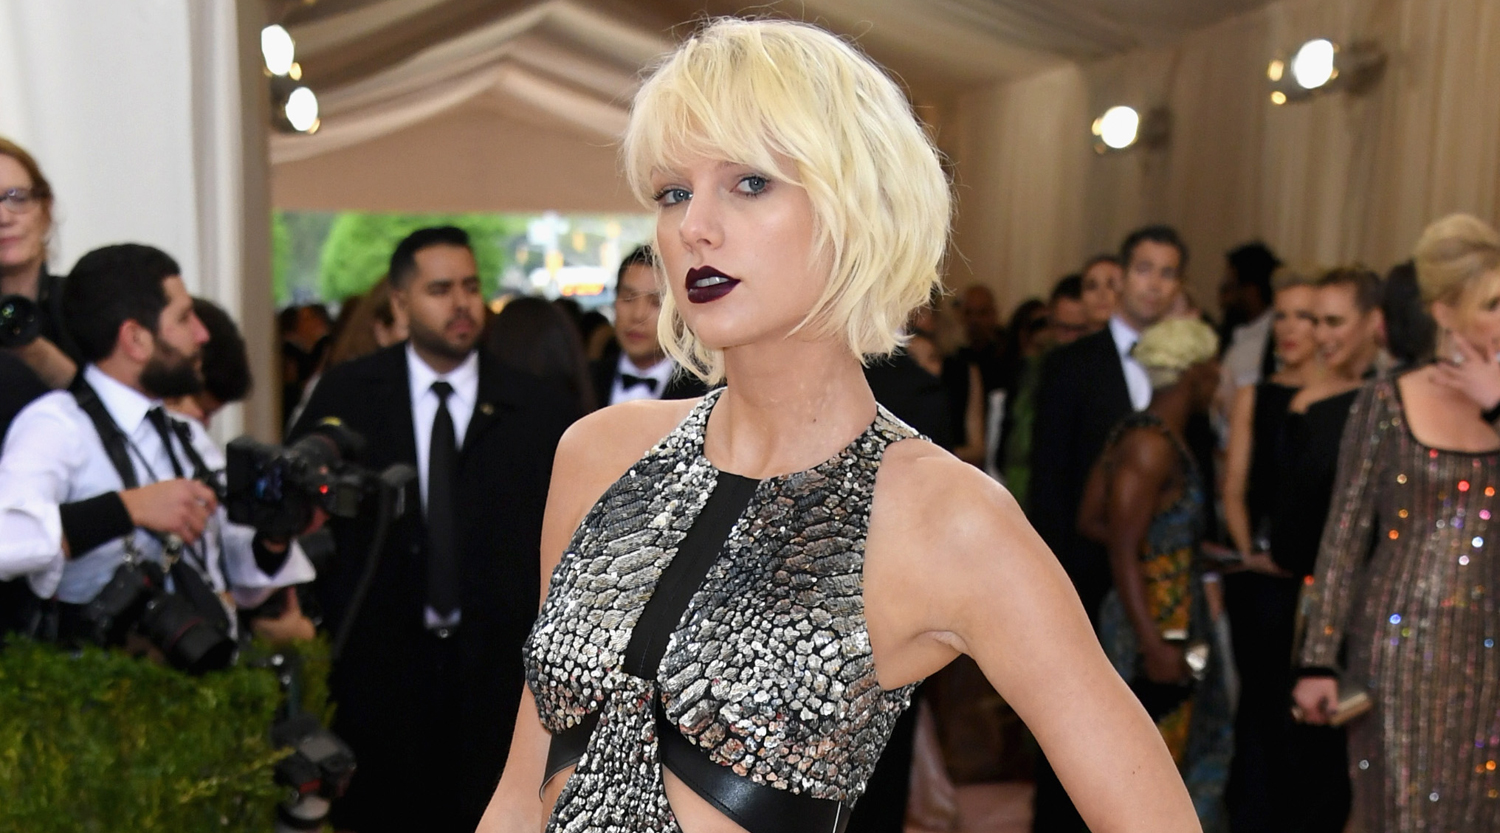 Taylor Swift rocks a metallic silver dress and strappy boots while walking the red carpet at the 2016 Met Gala held at the Metropolitan Museum of Art on Monday (May 2) in New York City. The 26-year-old singer is one of the co-chairs at the event this evening alongside Idris Elba, Vogue editor Anna Wintour, and Apple exec Jonathan Ive. This year's Costume Institute Gala Benefit celebrates the opening of the Manus x Machina: Fashion in an Age of Technology exhibition. FYI: Taylor is wearing a Louis Vuitton dress, boots, and clutch, Mattia Cielo earrings, an Eva Fehren ear cuff and rings, and a Borgioni white diamond ring.